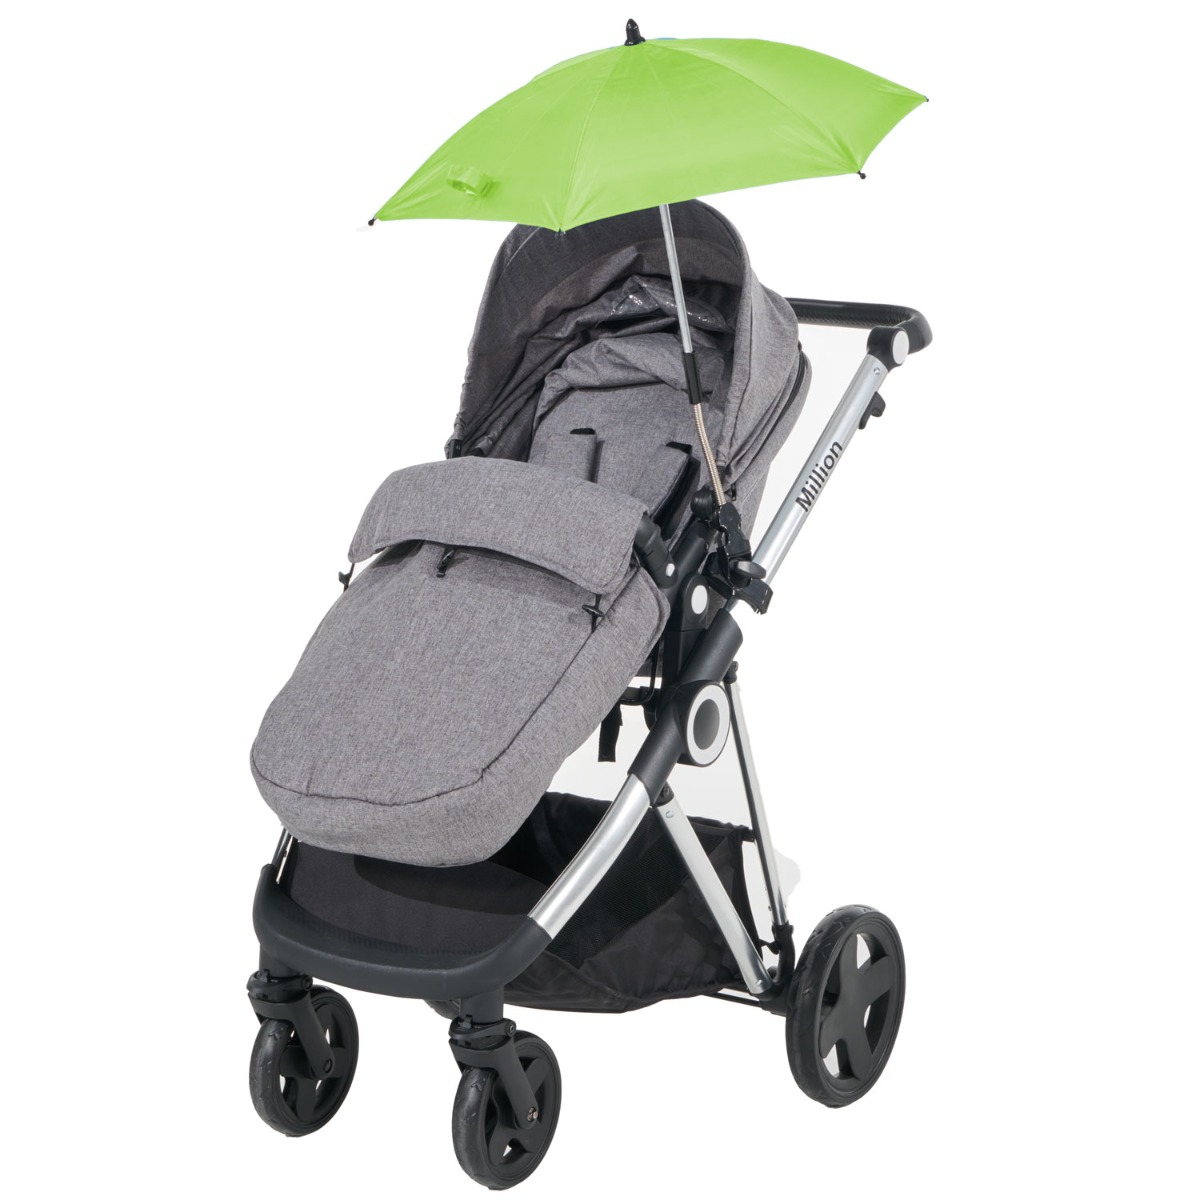 Baby-Parasol-Universal-Sun-Umbrella-Shade-Maker-Canopy-For-Pushchair-Pram-Buggy thumbnail 57